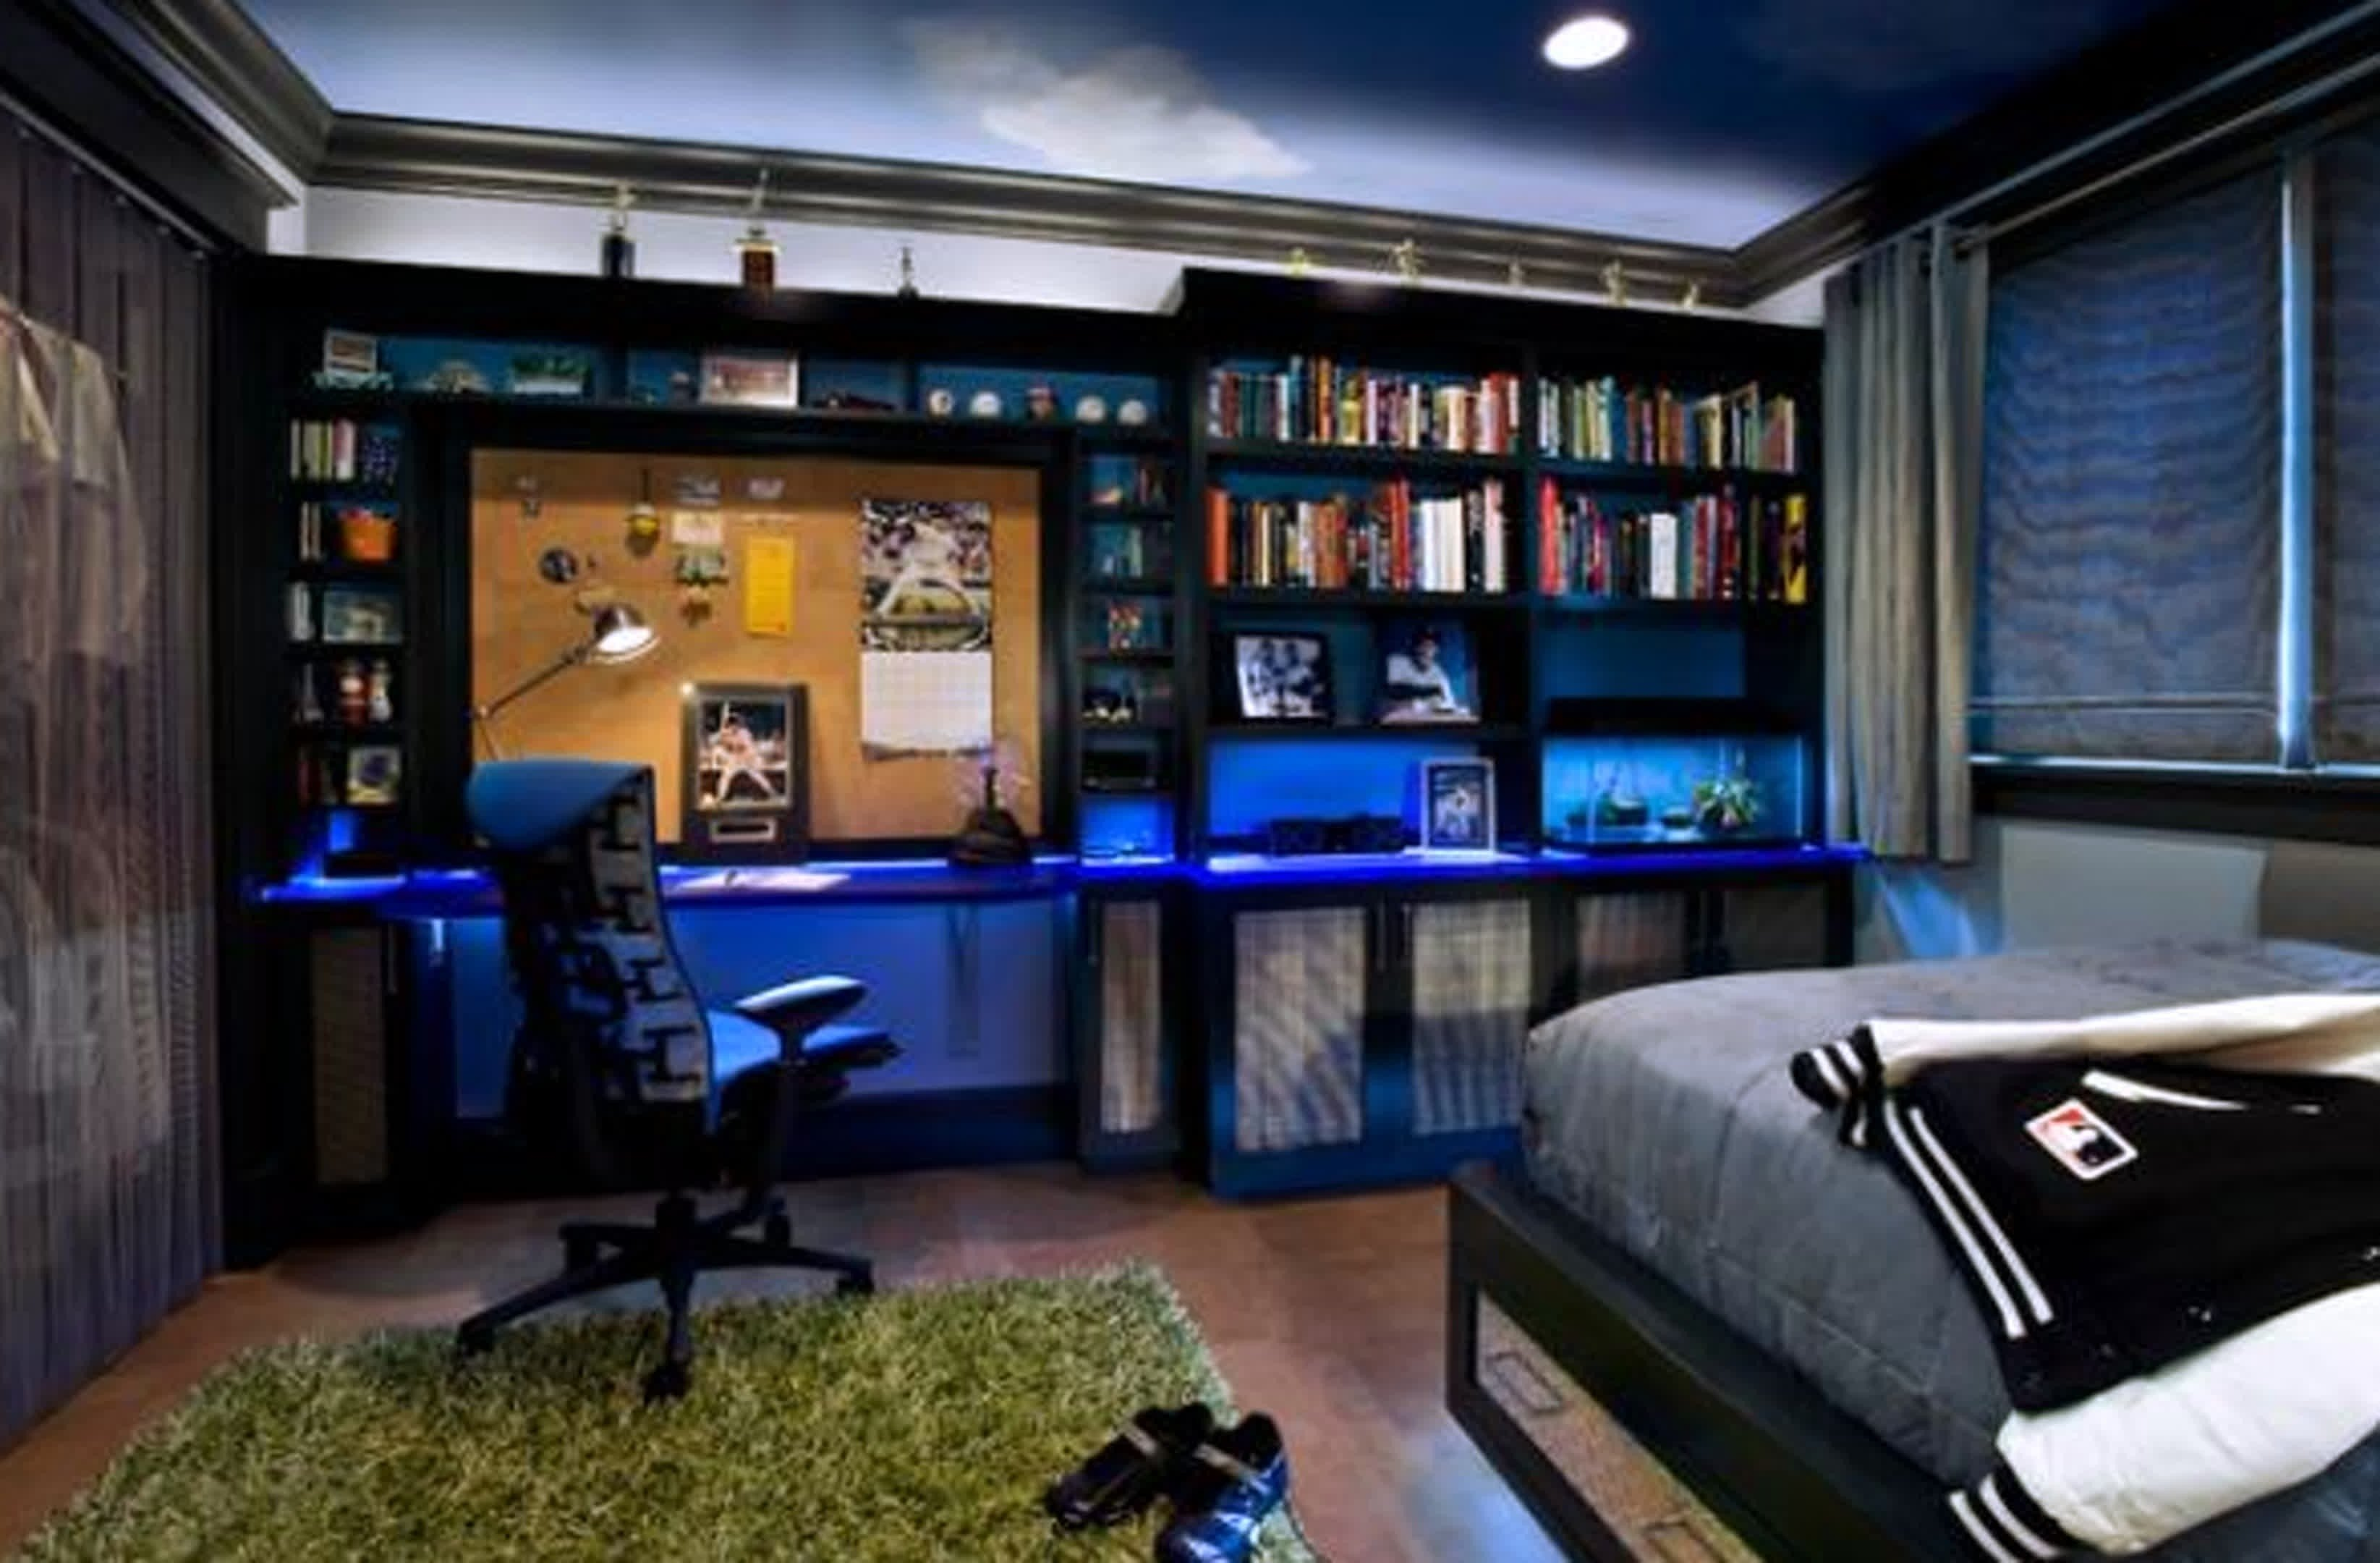 10 Great Room Design Ideas For Guys cool room desighns bedroom splendid cool room ideas for guys cool 2020